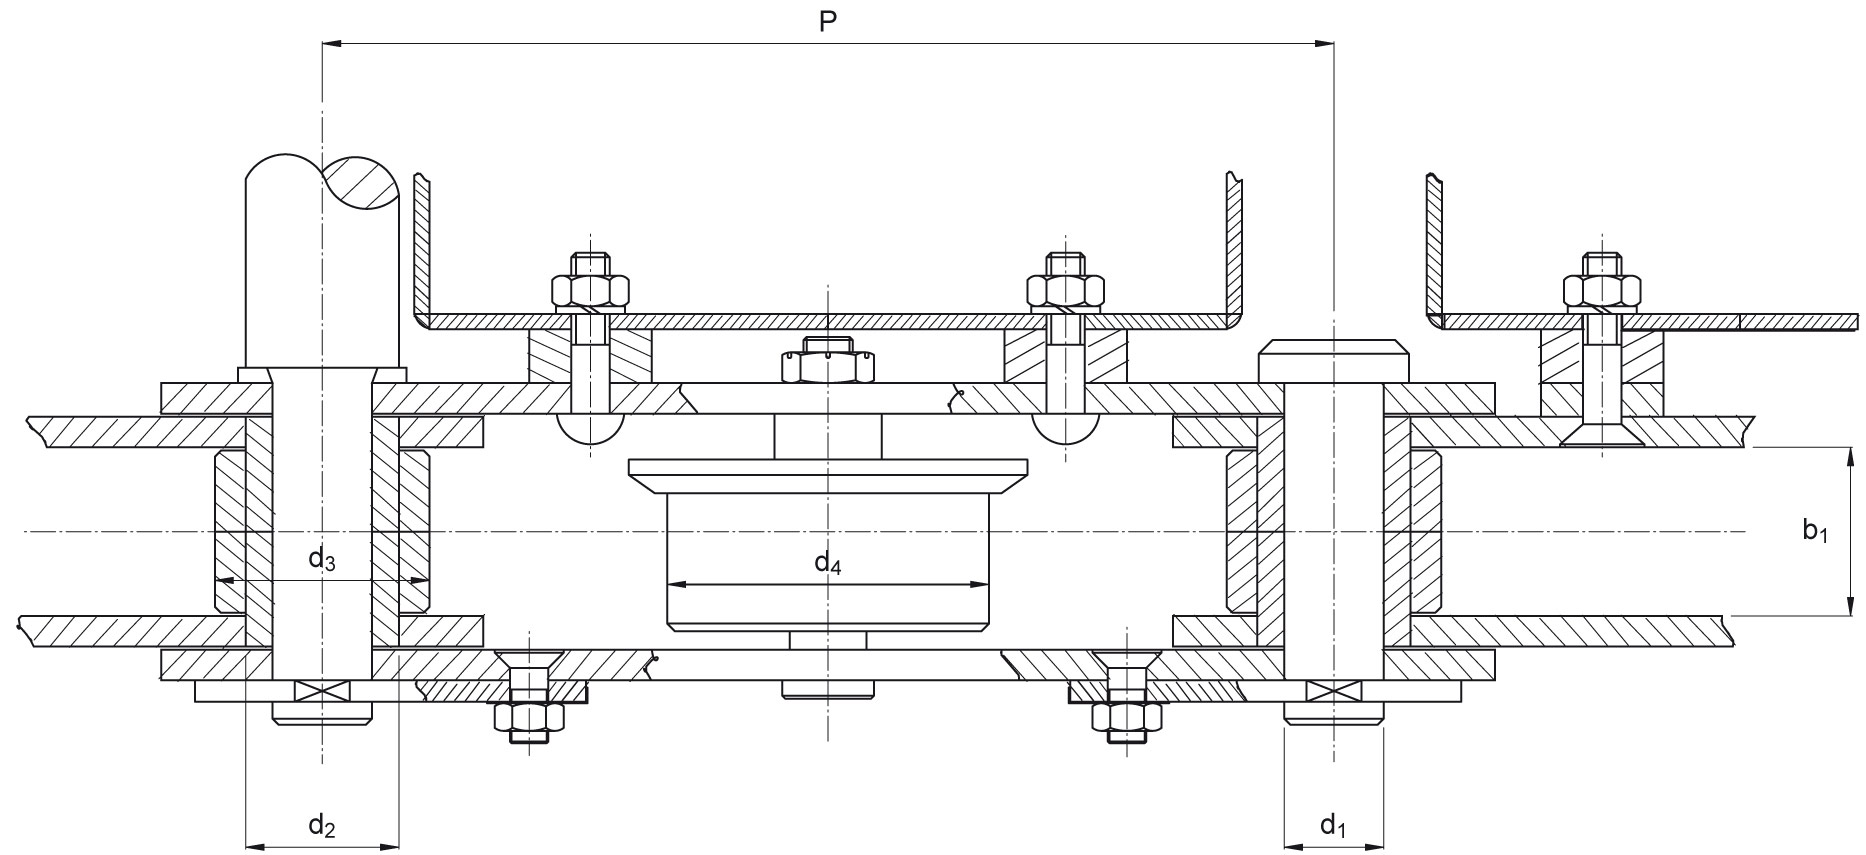 Elevator Roller Diagram Electrical Wiring Diagrams For Cicsa Chains Bucket Elevators Chain Systems